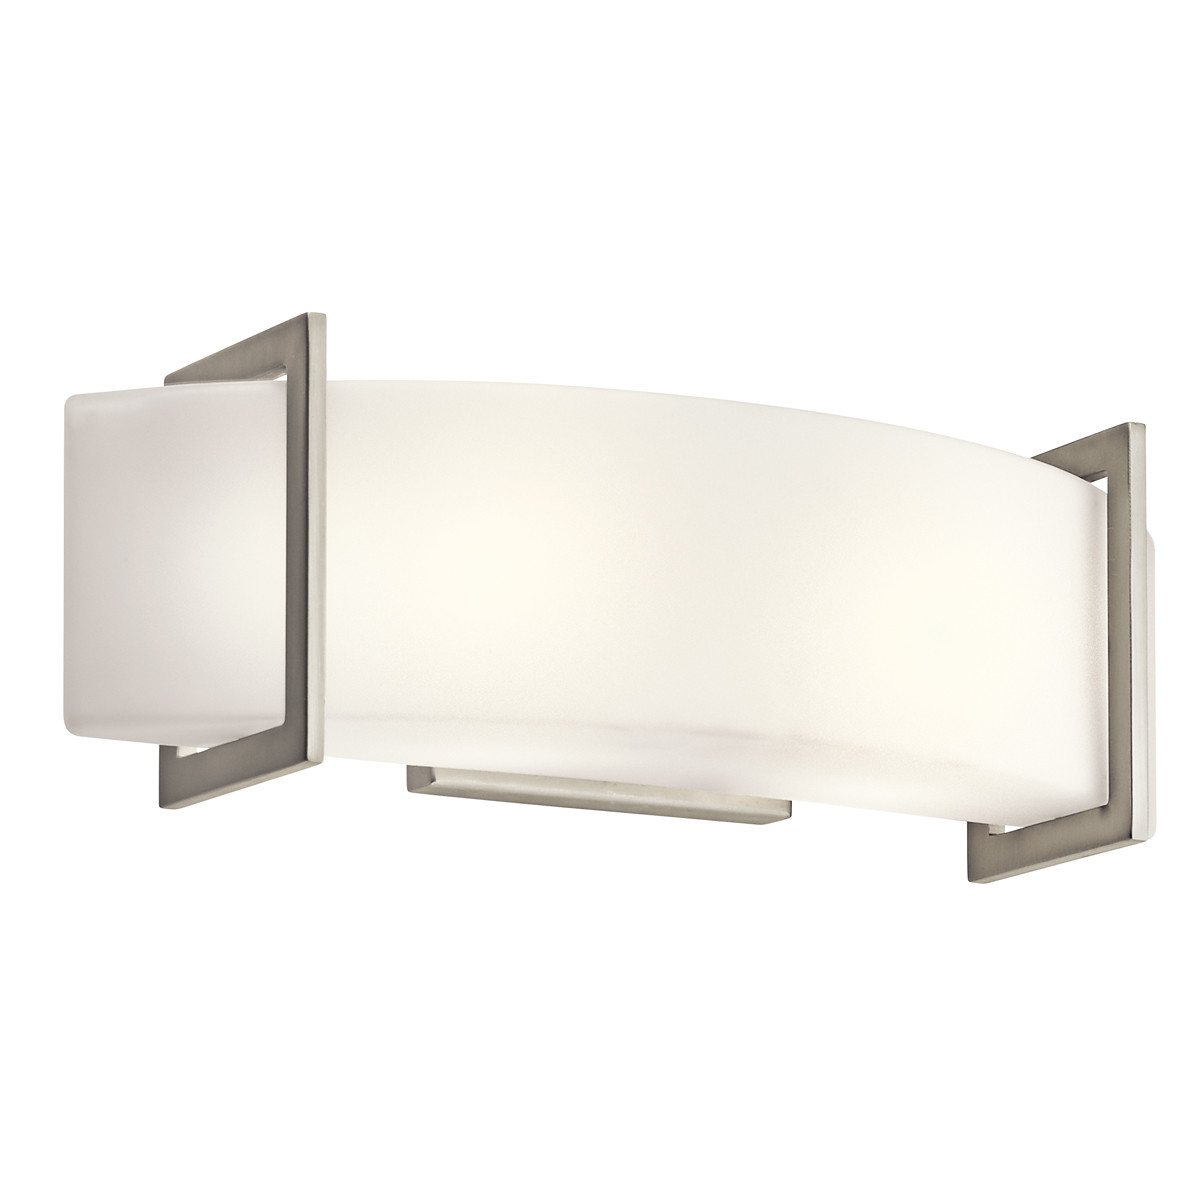 Details about kichler 45218ni crescent view 18 wide 2 bulb bathroom lighting fixture